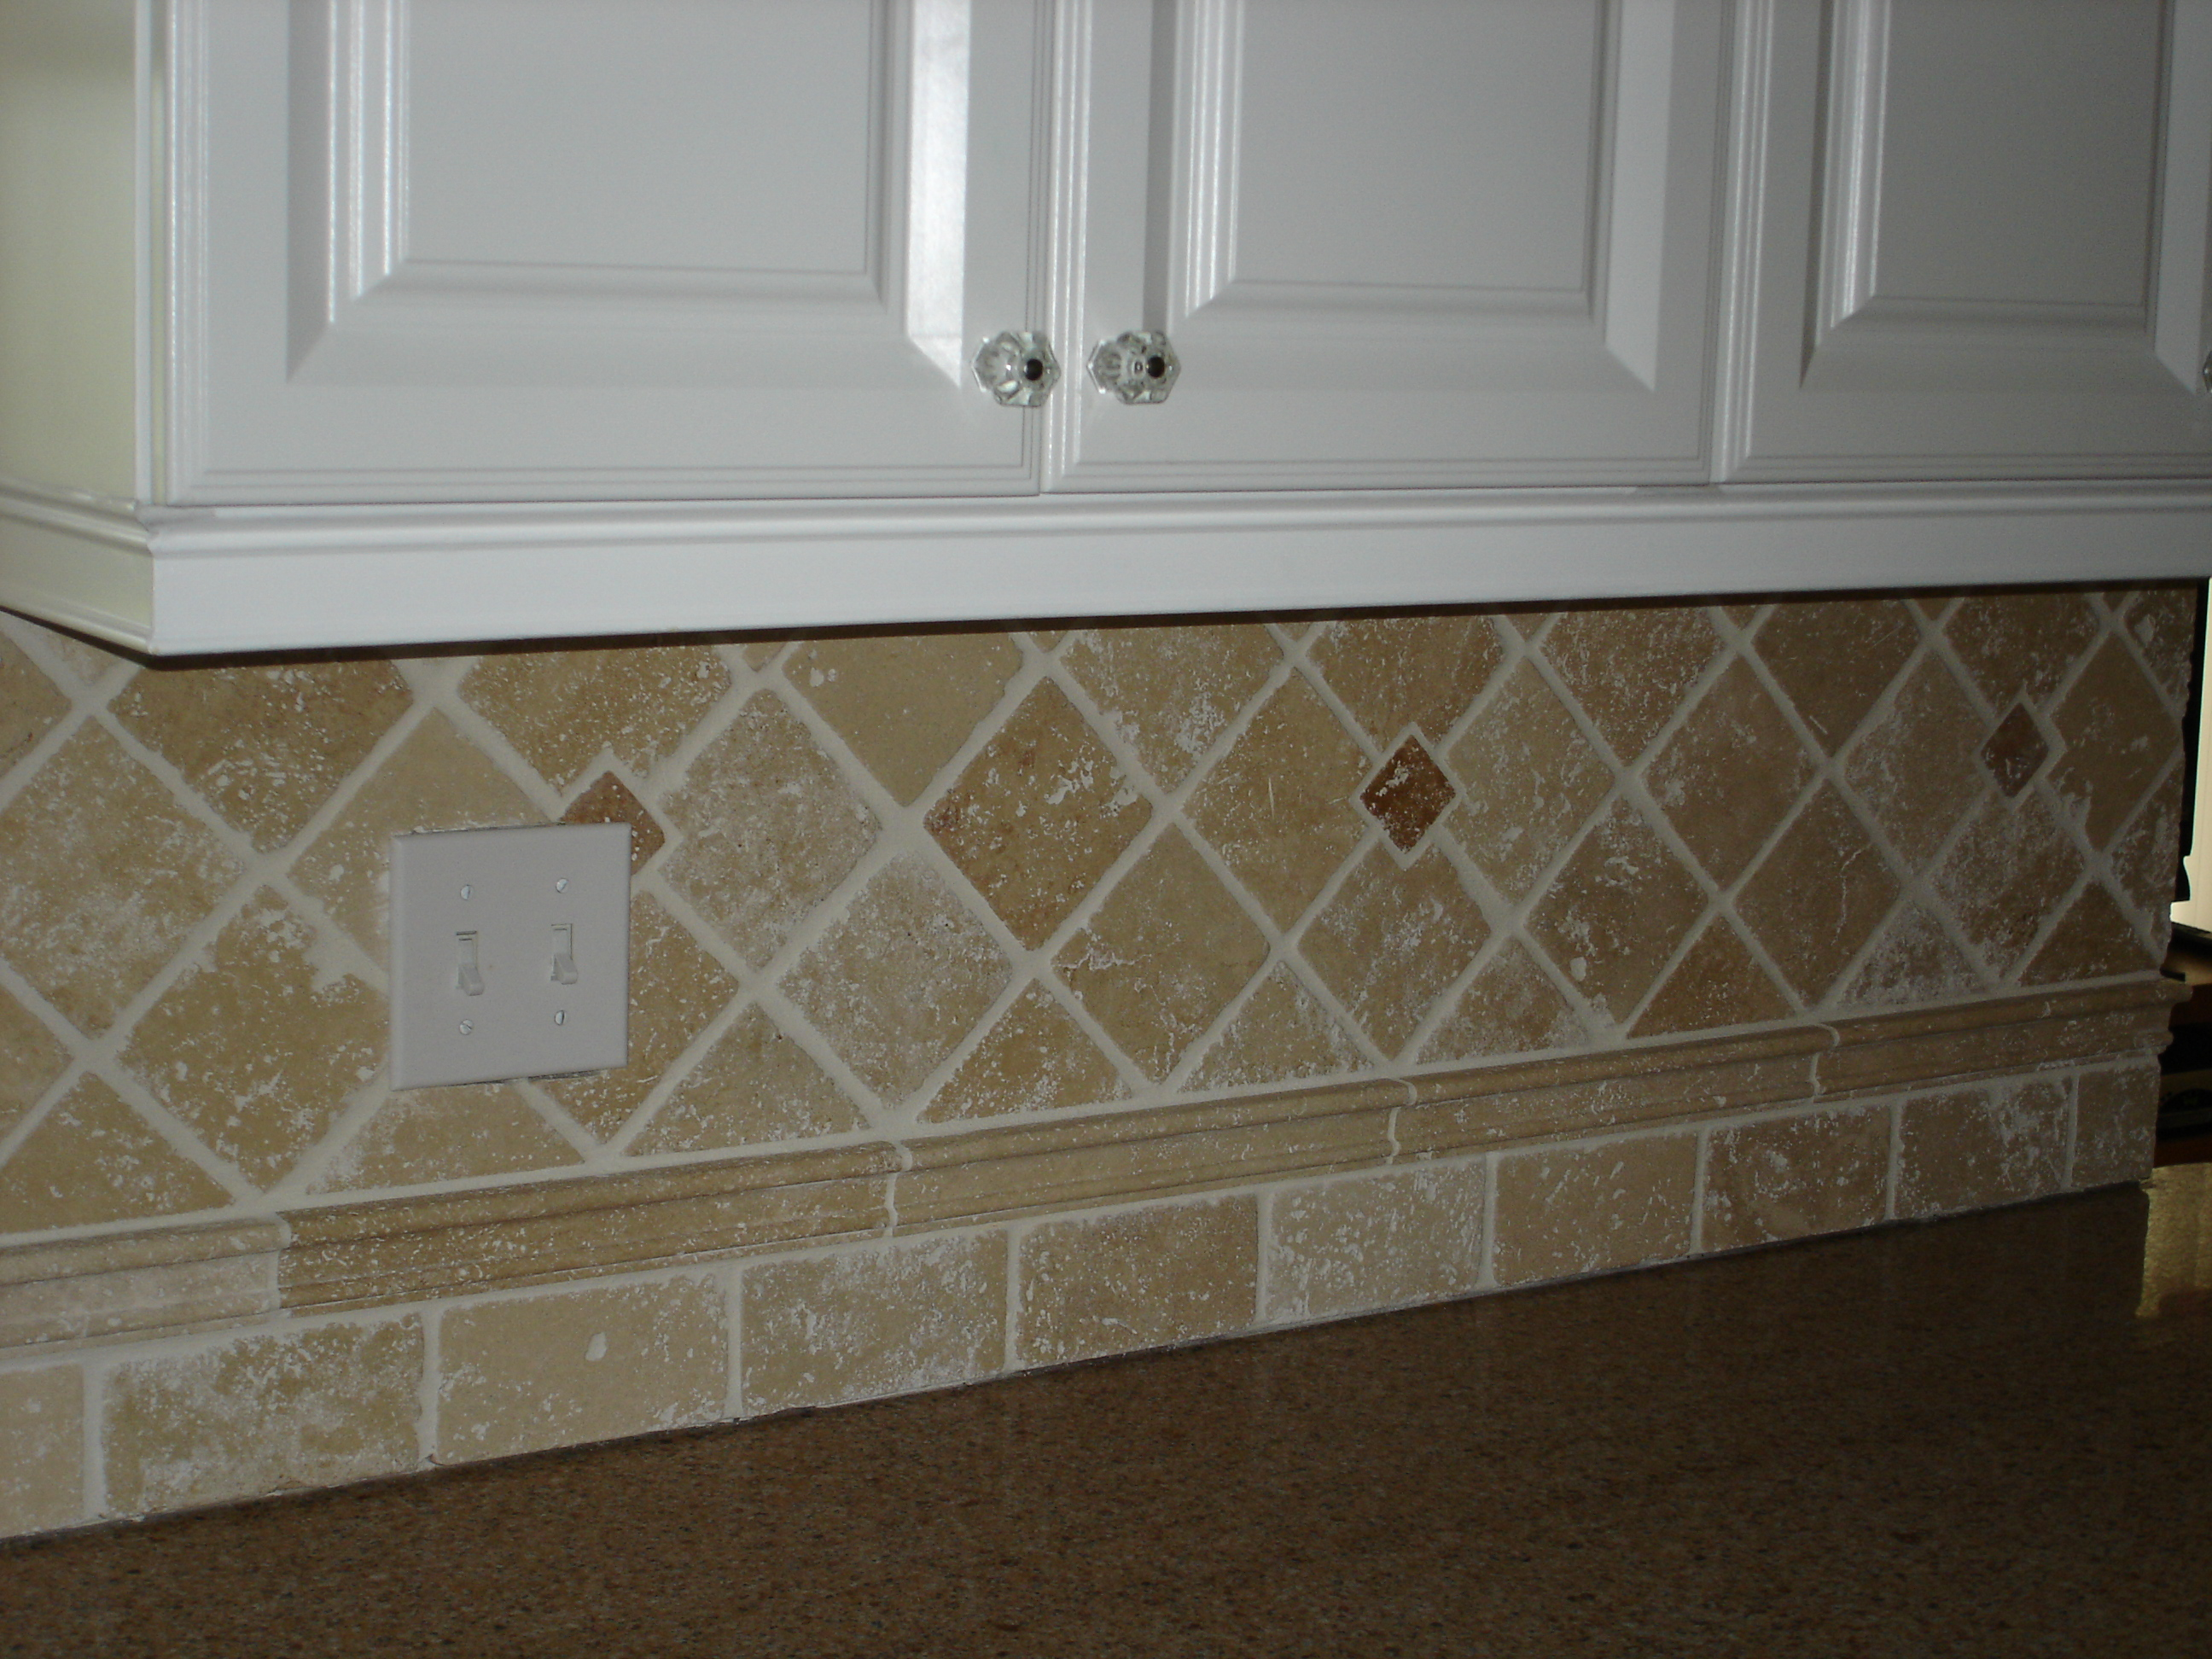 tile mural kitchen backsplash designs acrylic bathroom rug toilet splash tiling kitchen backsplash day tweet share